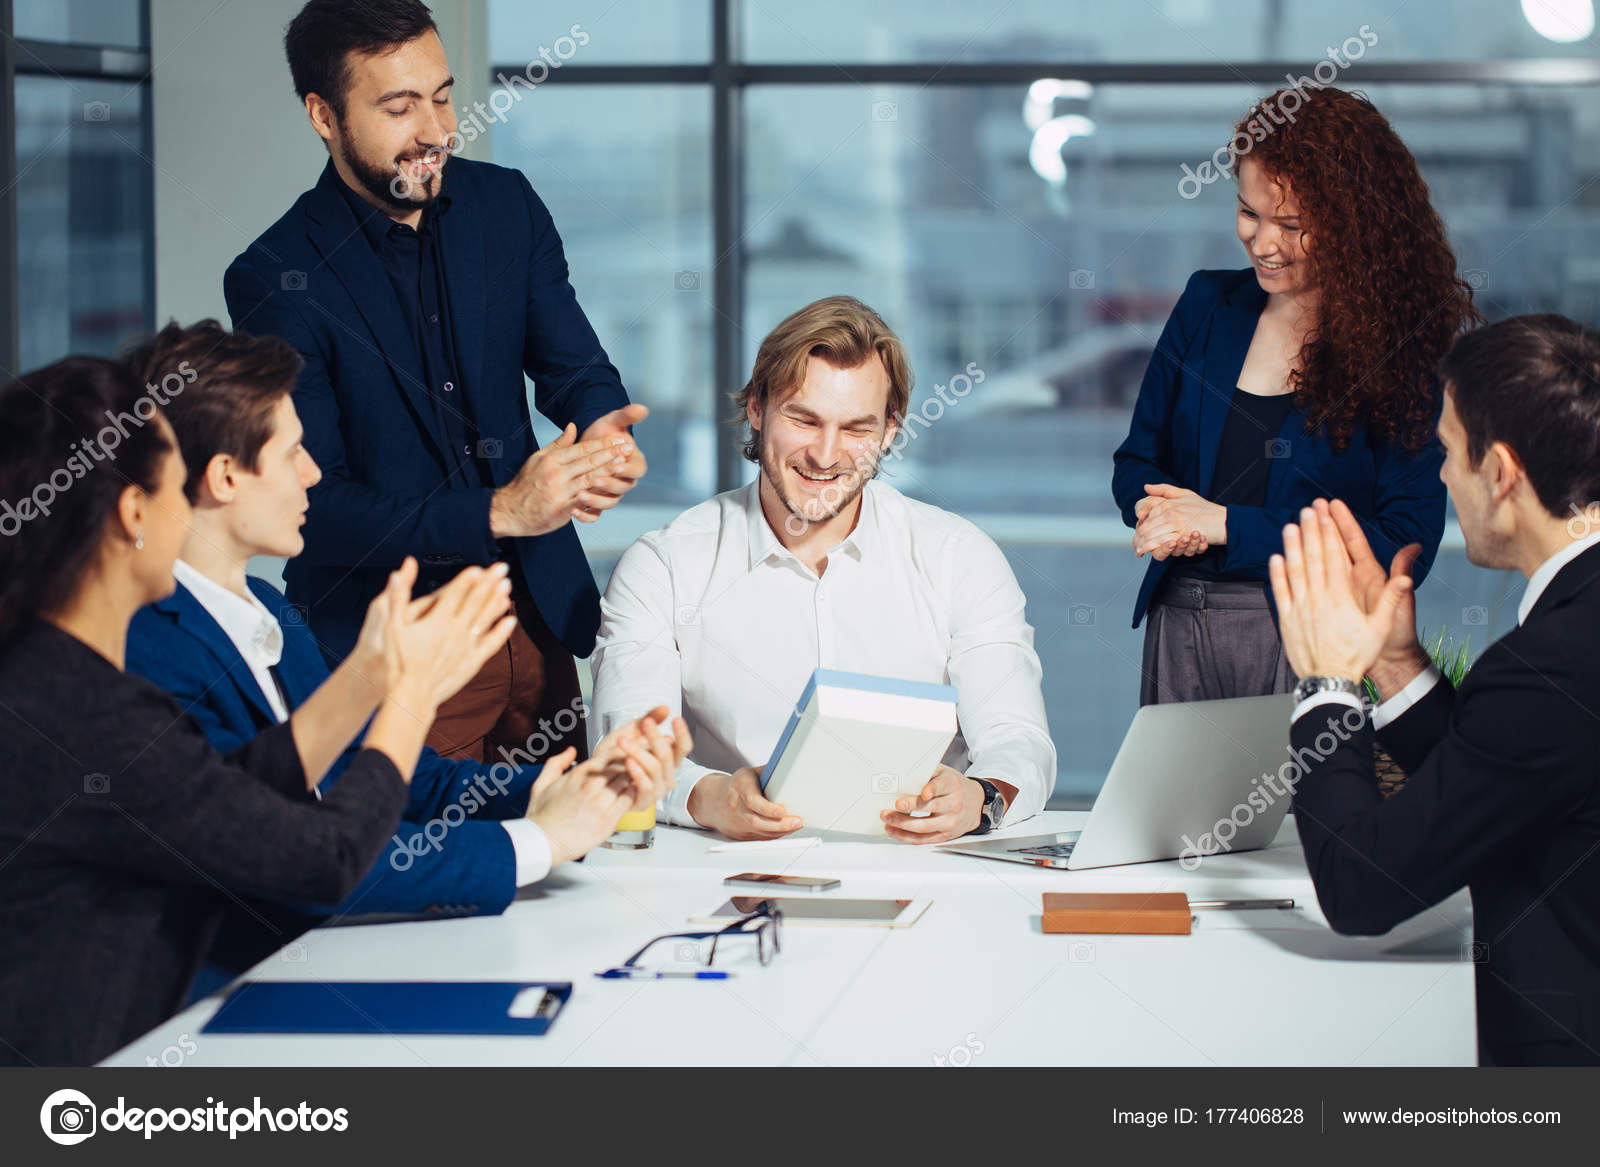 Colleagues Celebrating Bday Party In Office Smiling Giving Presents To Boss Stock Image